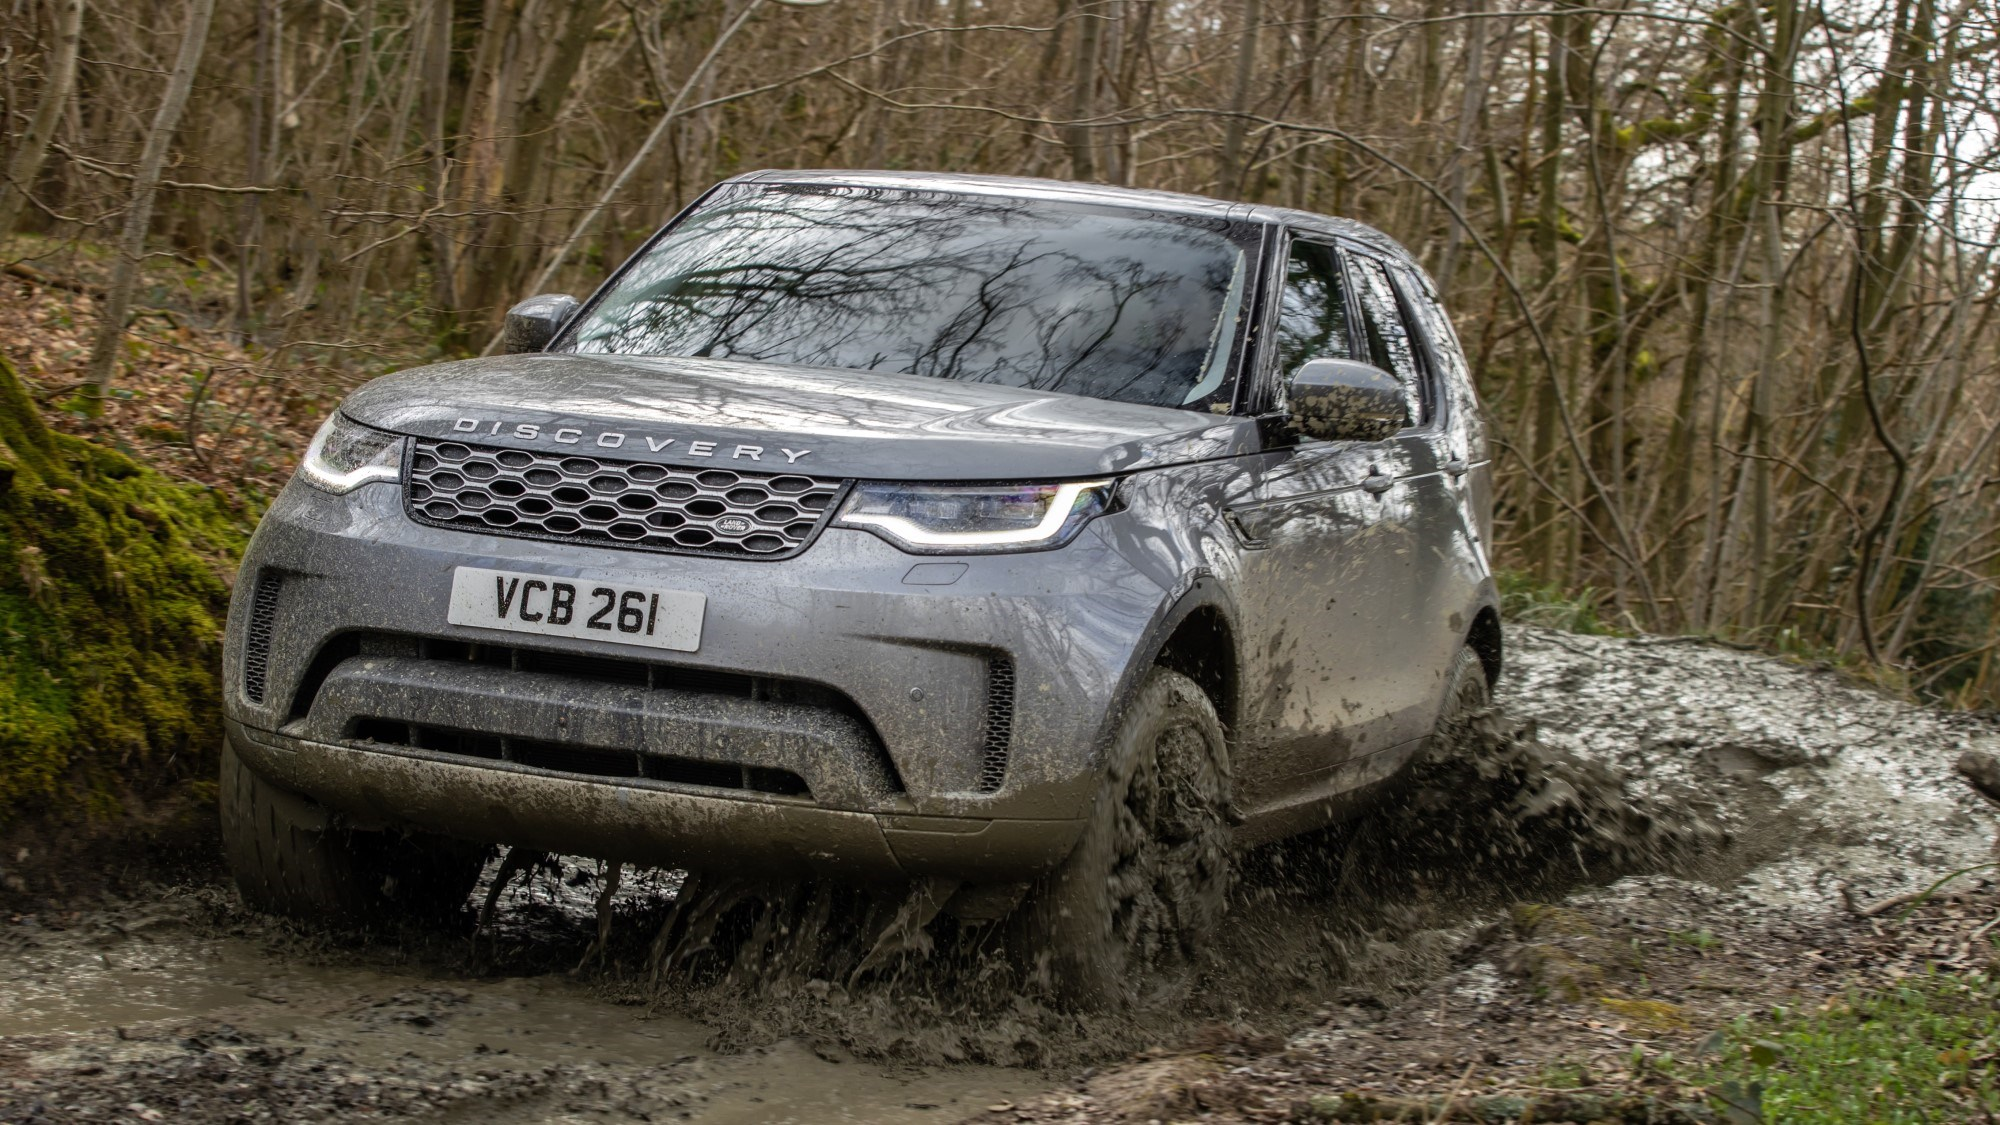 2021 Land Rover Discovery off-road